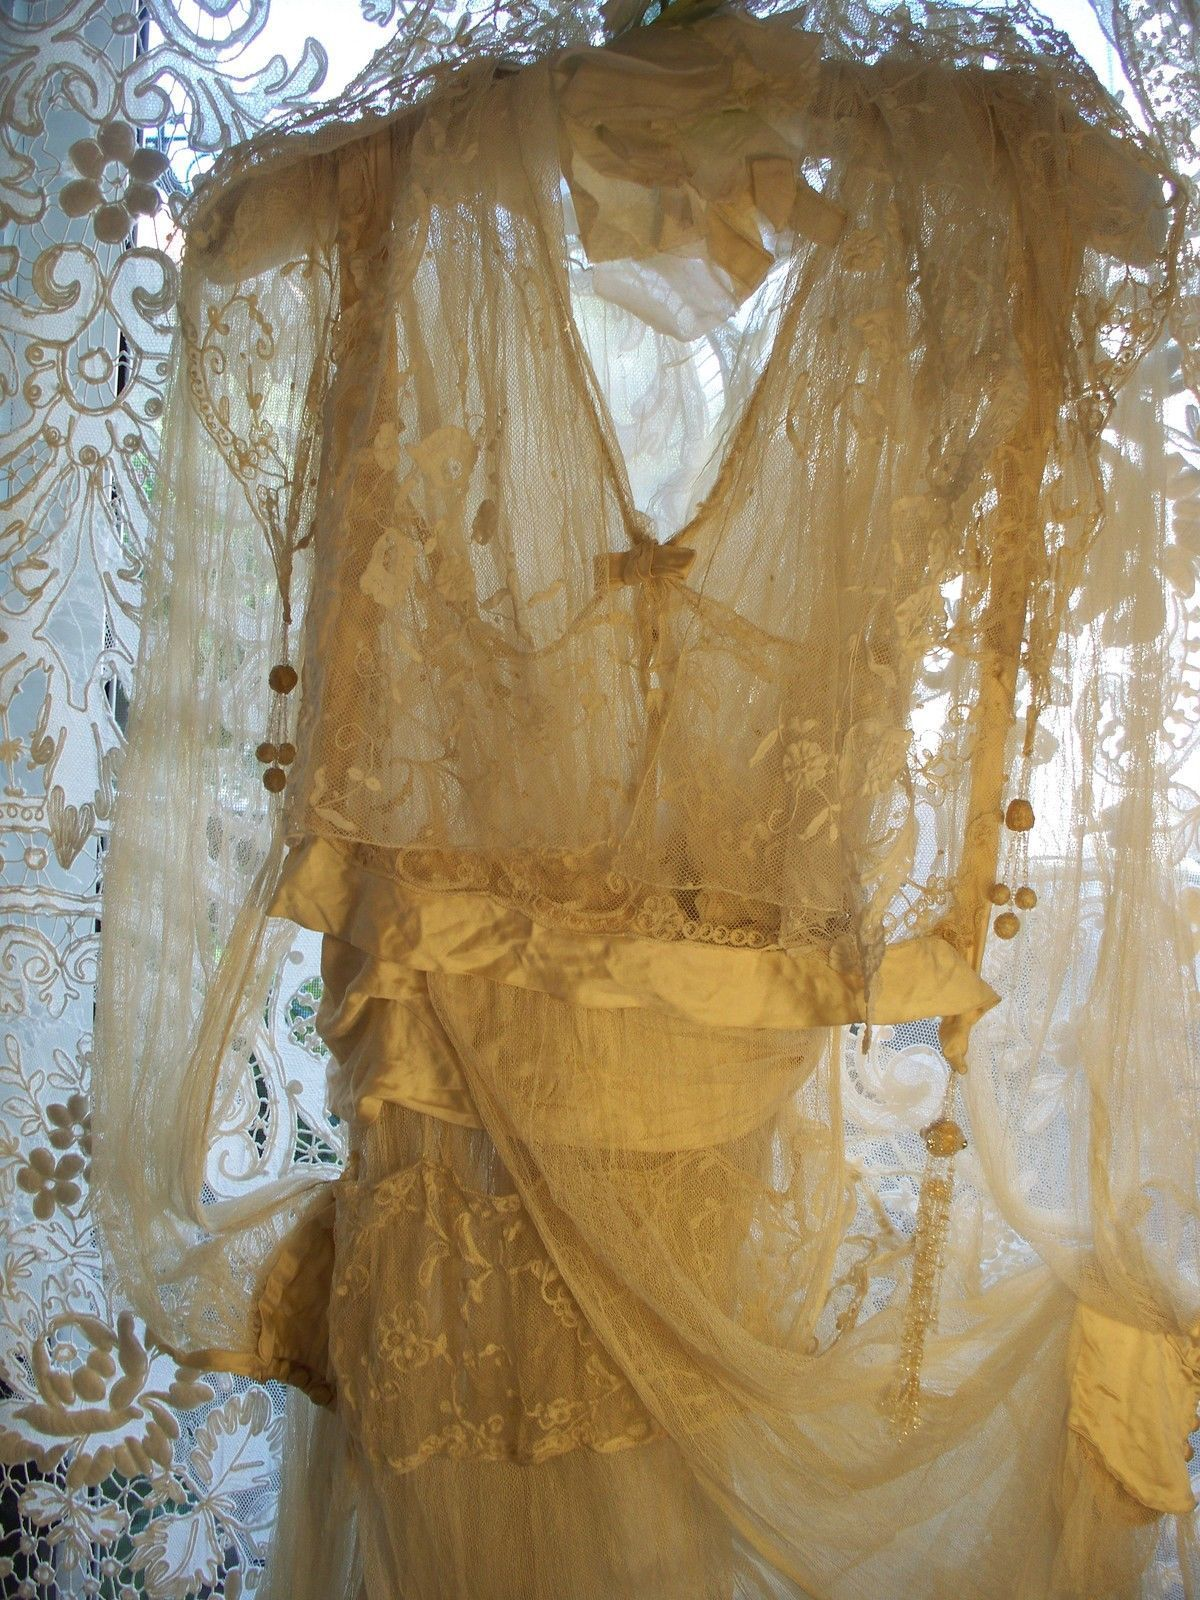 Exquisite French Wedding Dress Circa 1899